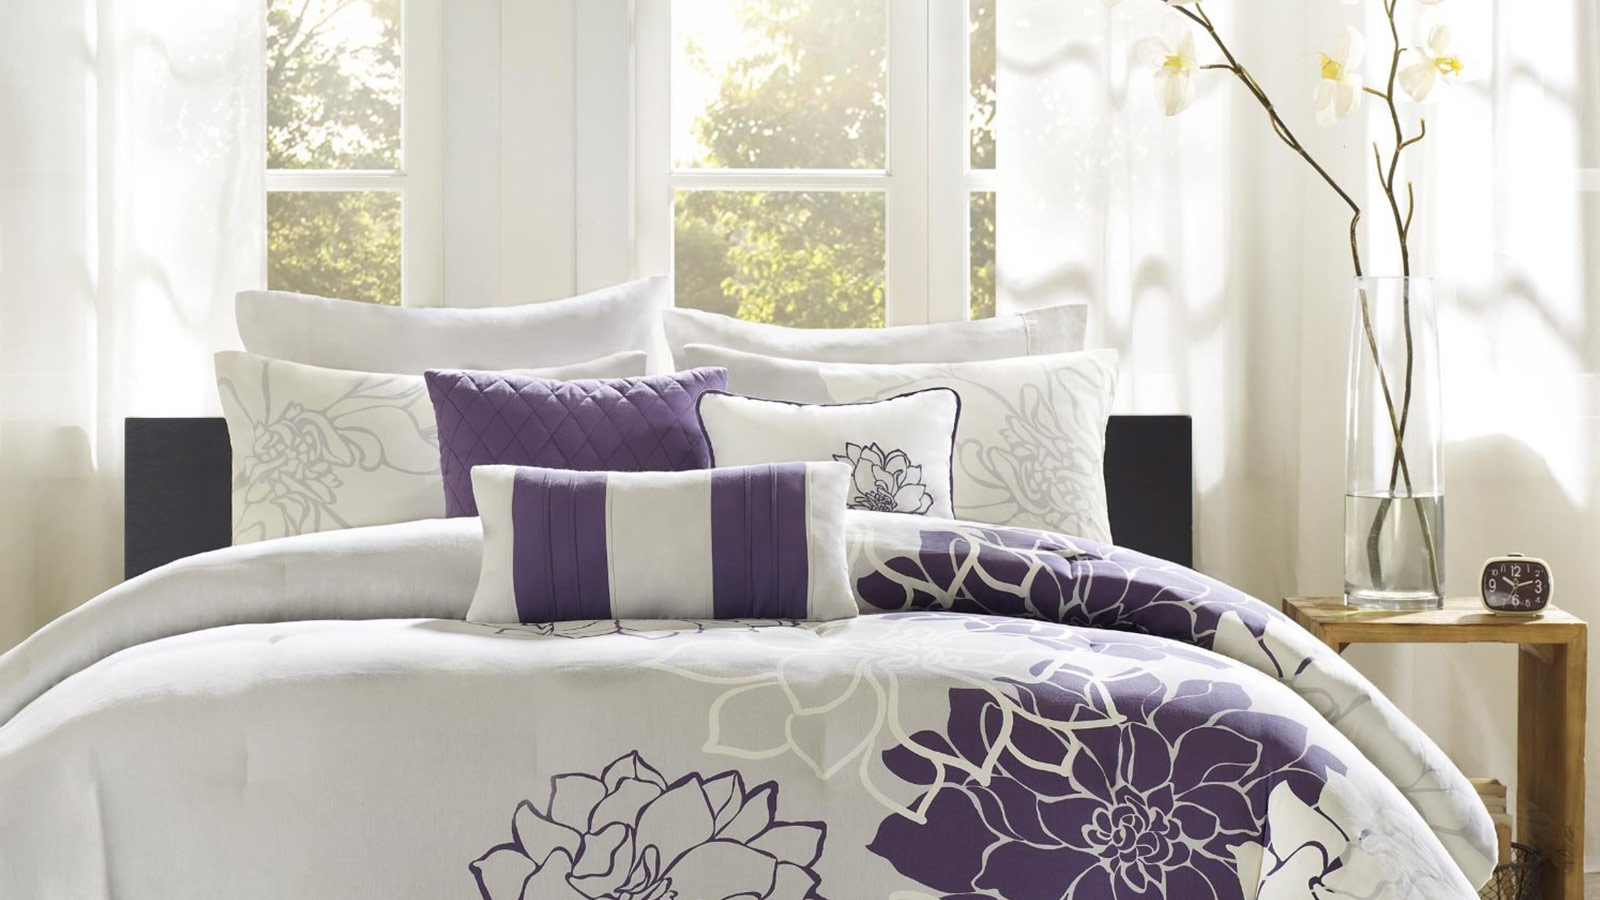 15 Modern Comforter Sets To Give Your Bedroom A Fresh New Look